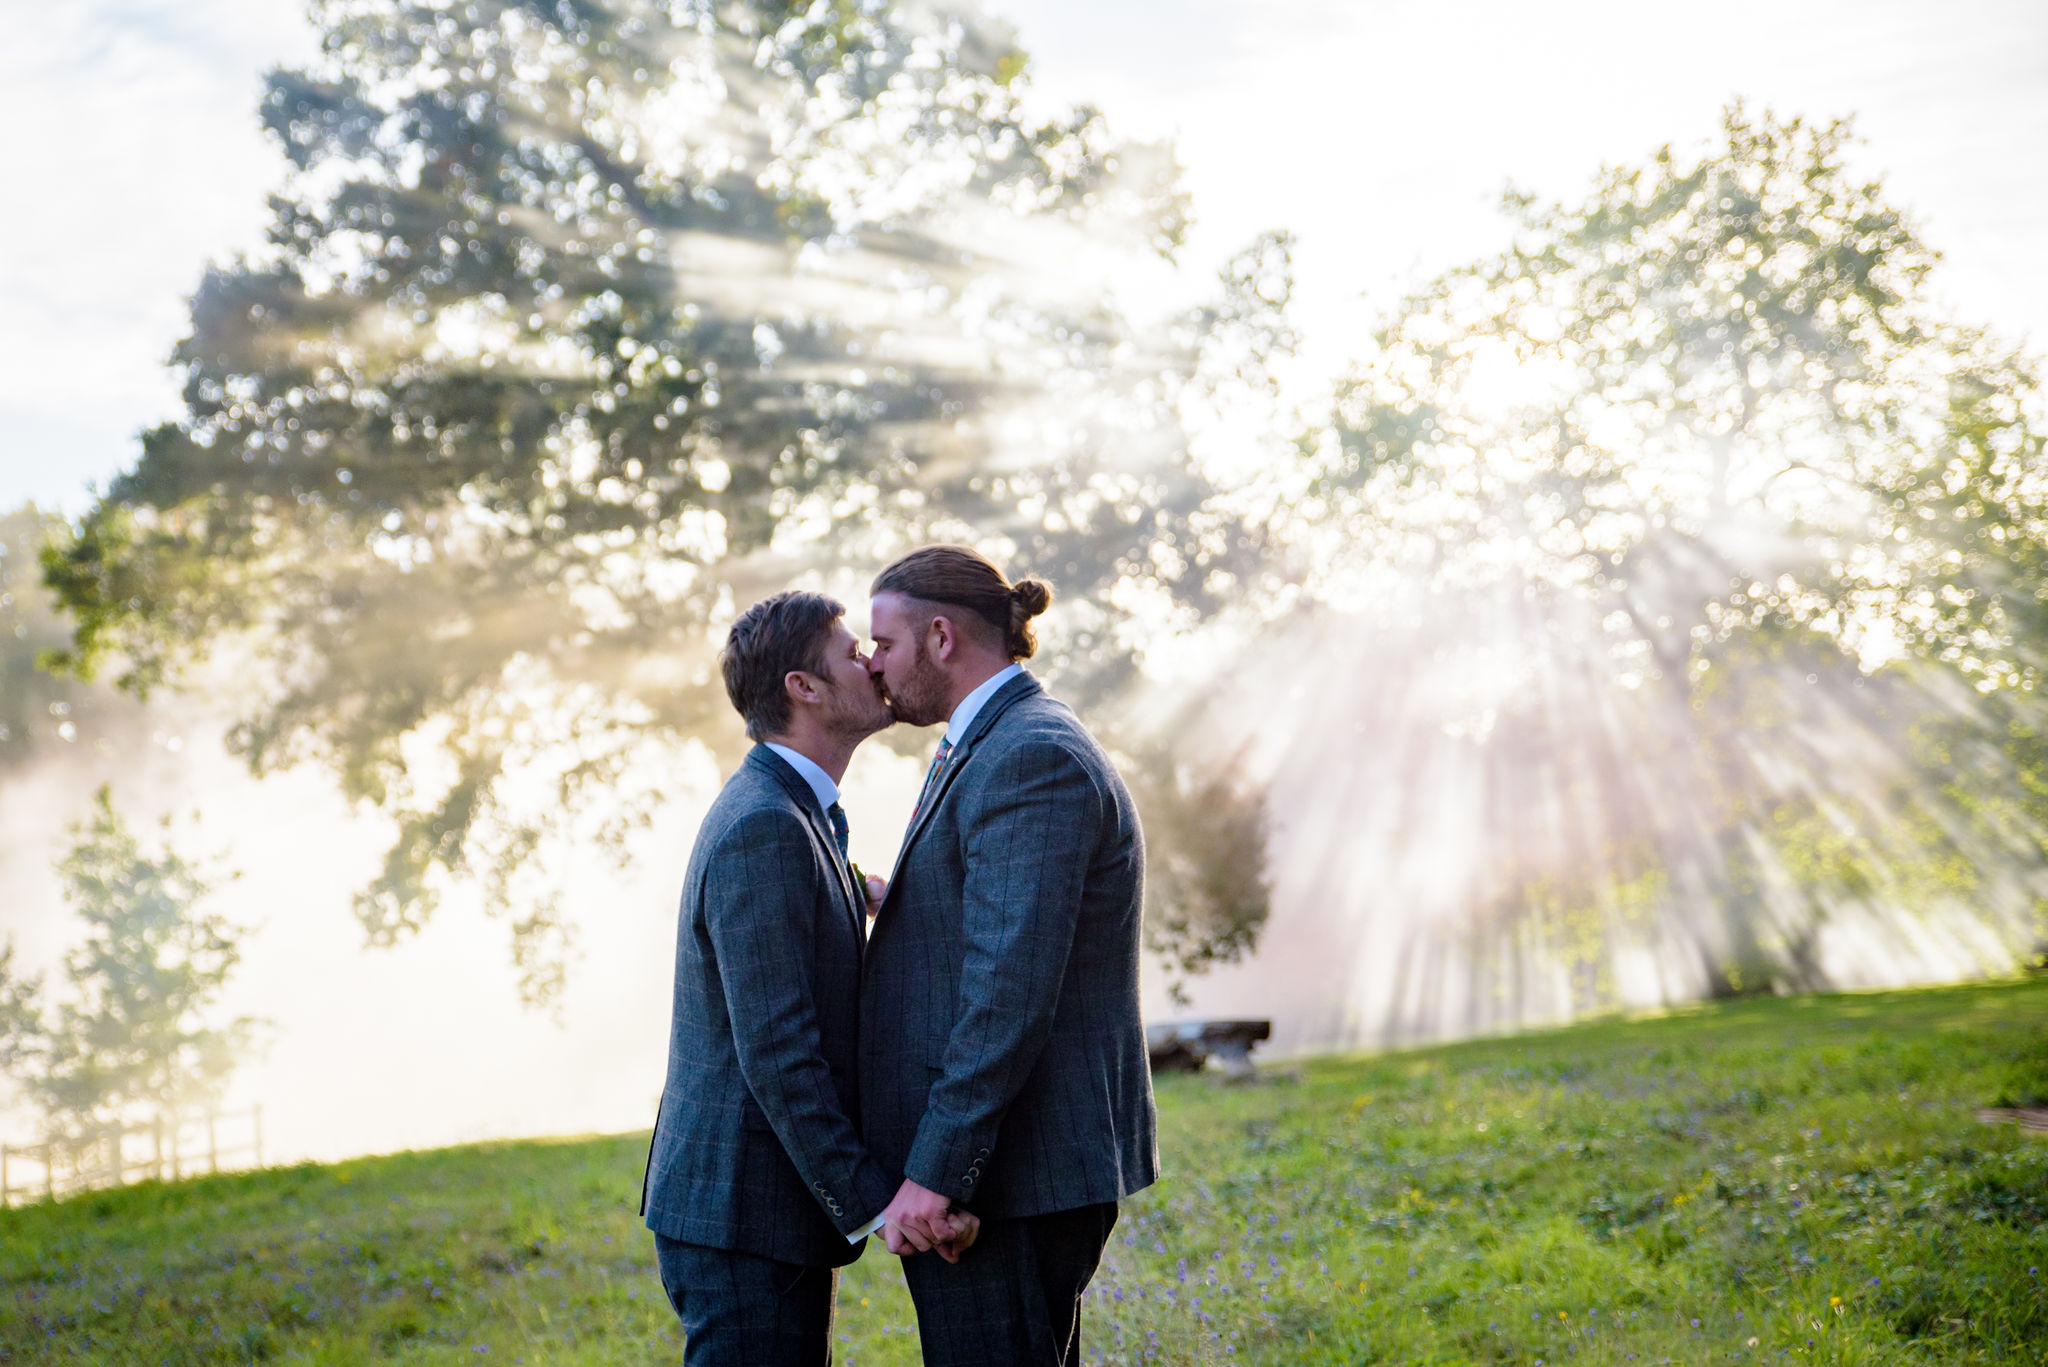 Chantelle Goble Photography - Rainbow wedding - same sex wedding - engagement photoshoot advice - alternative wedding 3